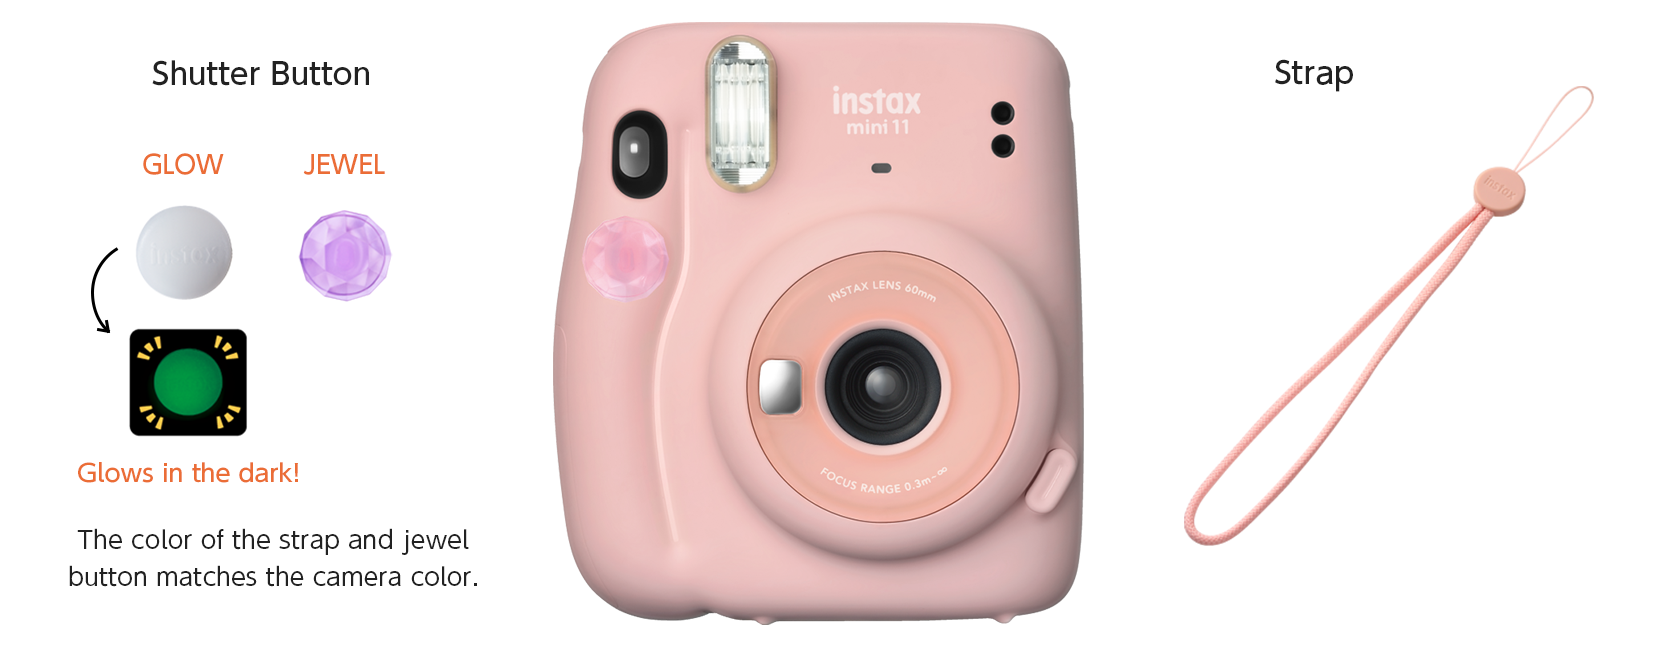 [photo] Blush Pink instax mini 11 customized with shutter buttons and camera strap